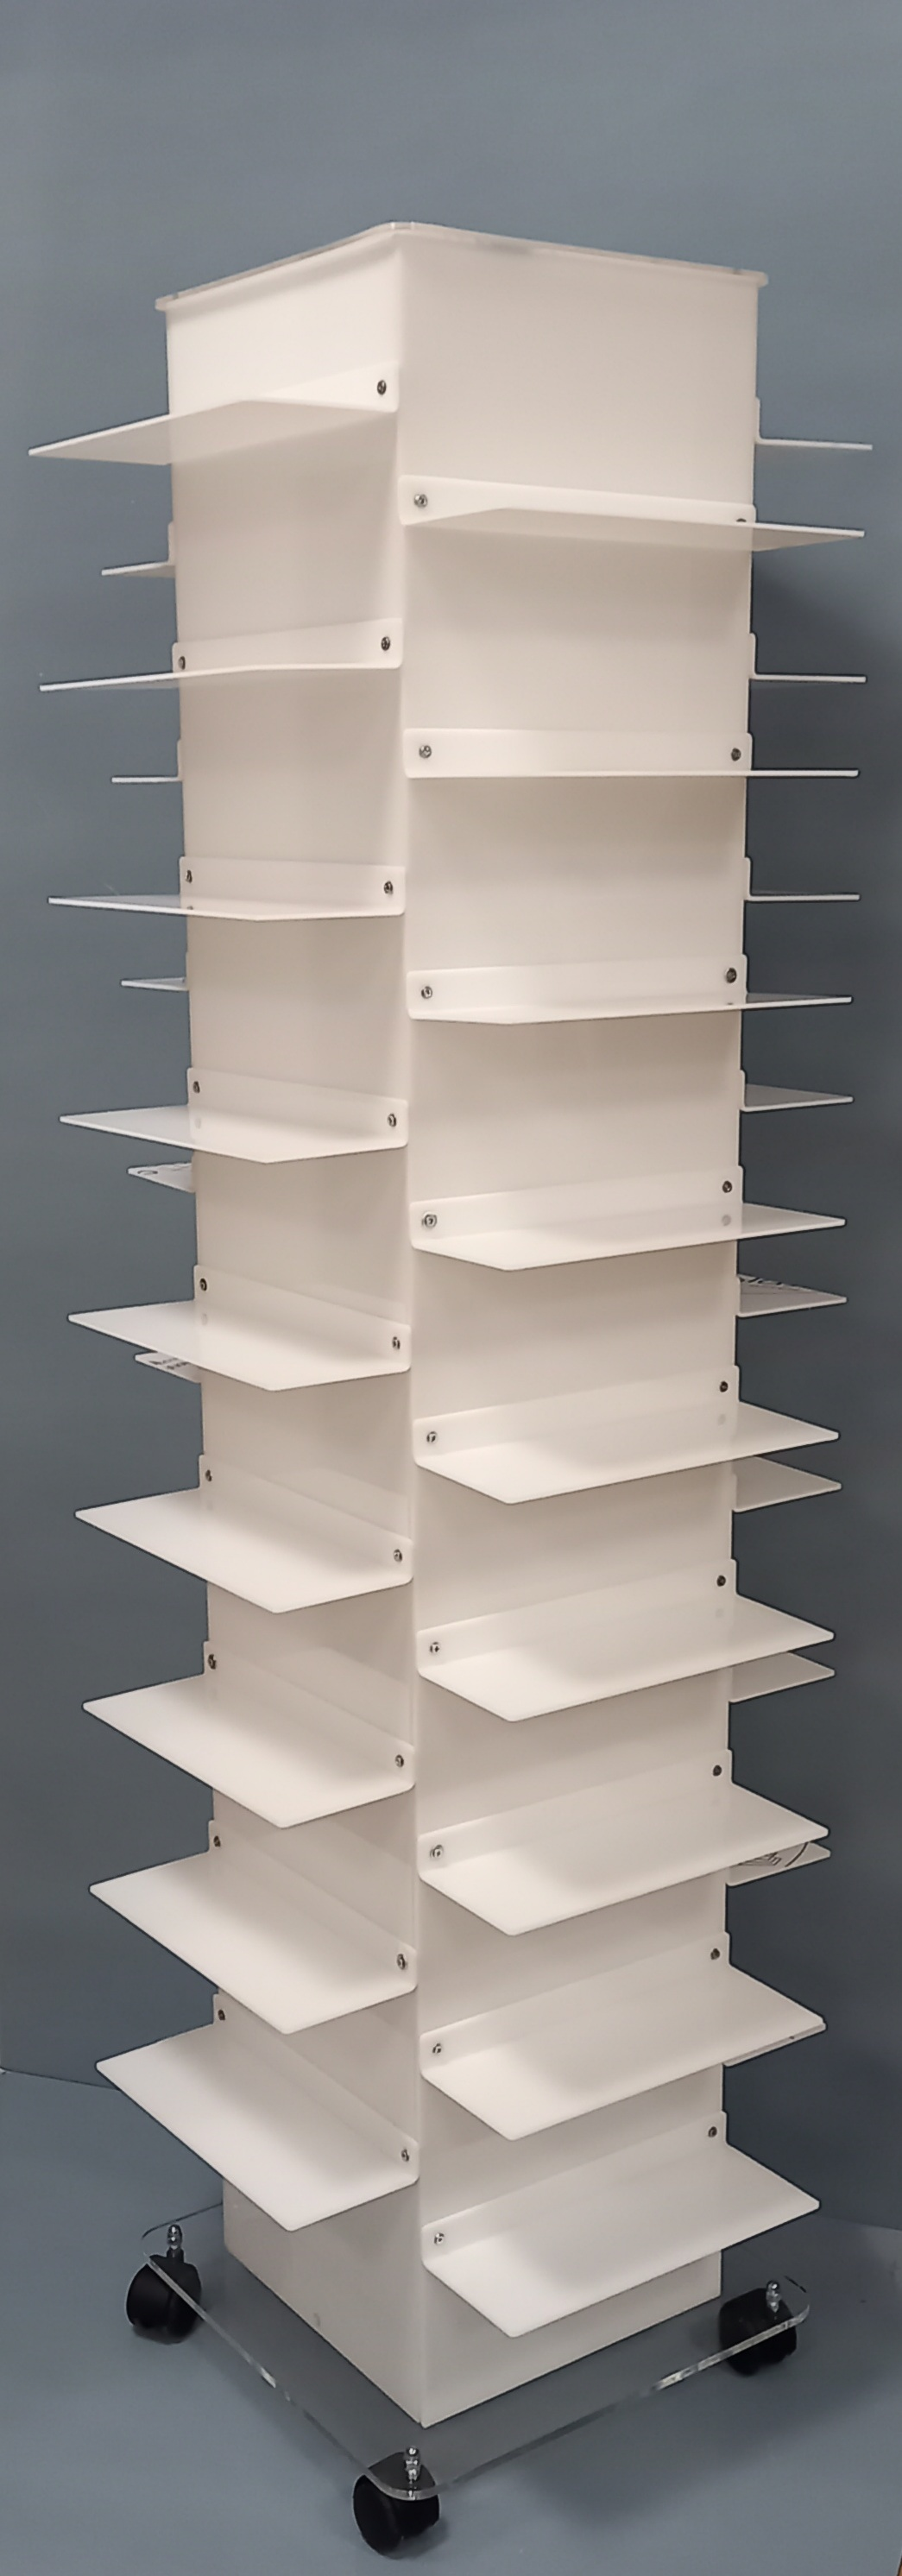 Clear plexiglass footwear display stand with 36 shelves and casters